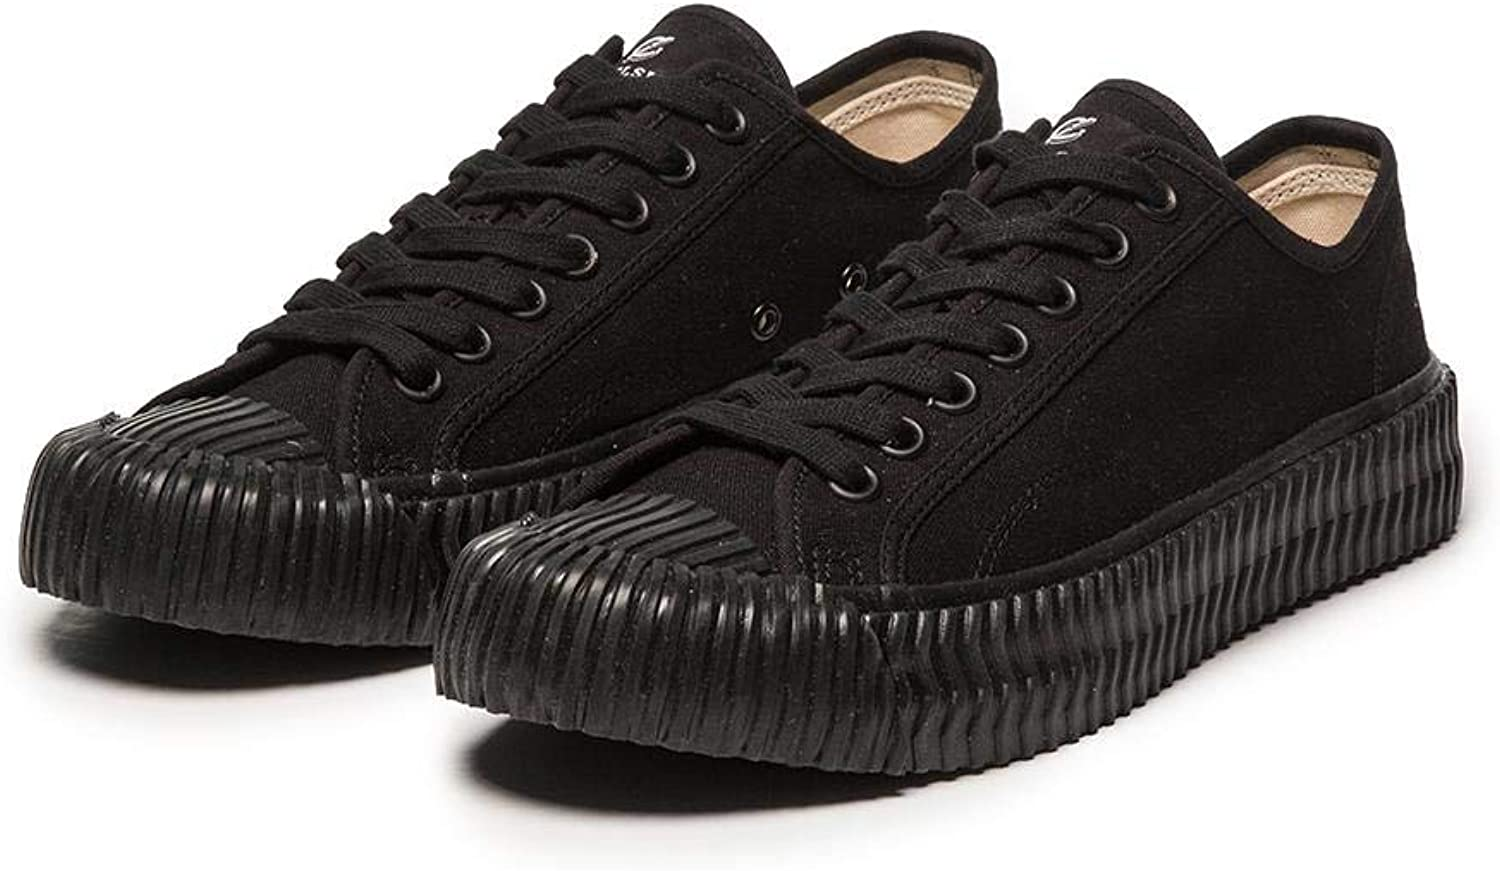 EXCELSIOR Unisex Street Style Bolt Low-top Vulcanized Fashion Sneakers